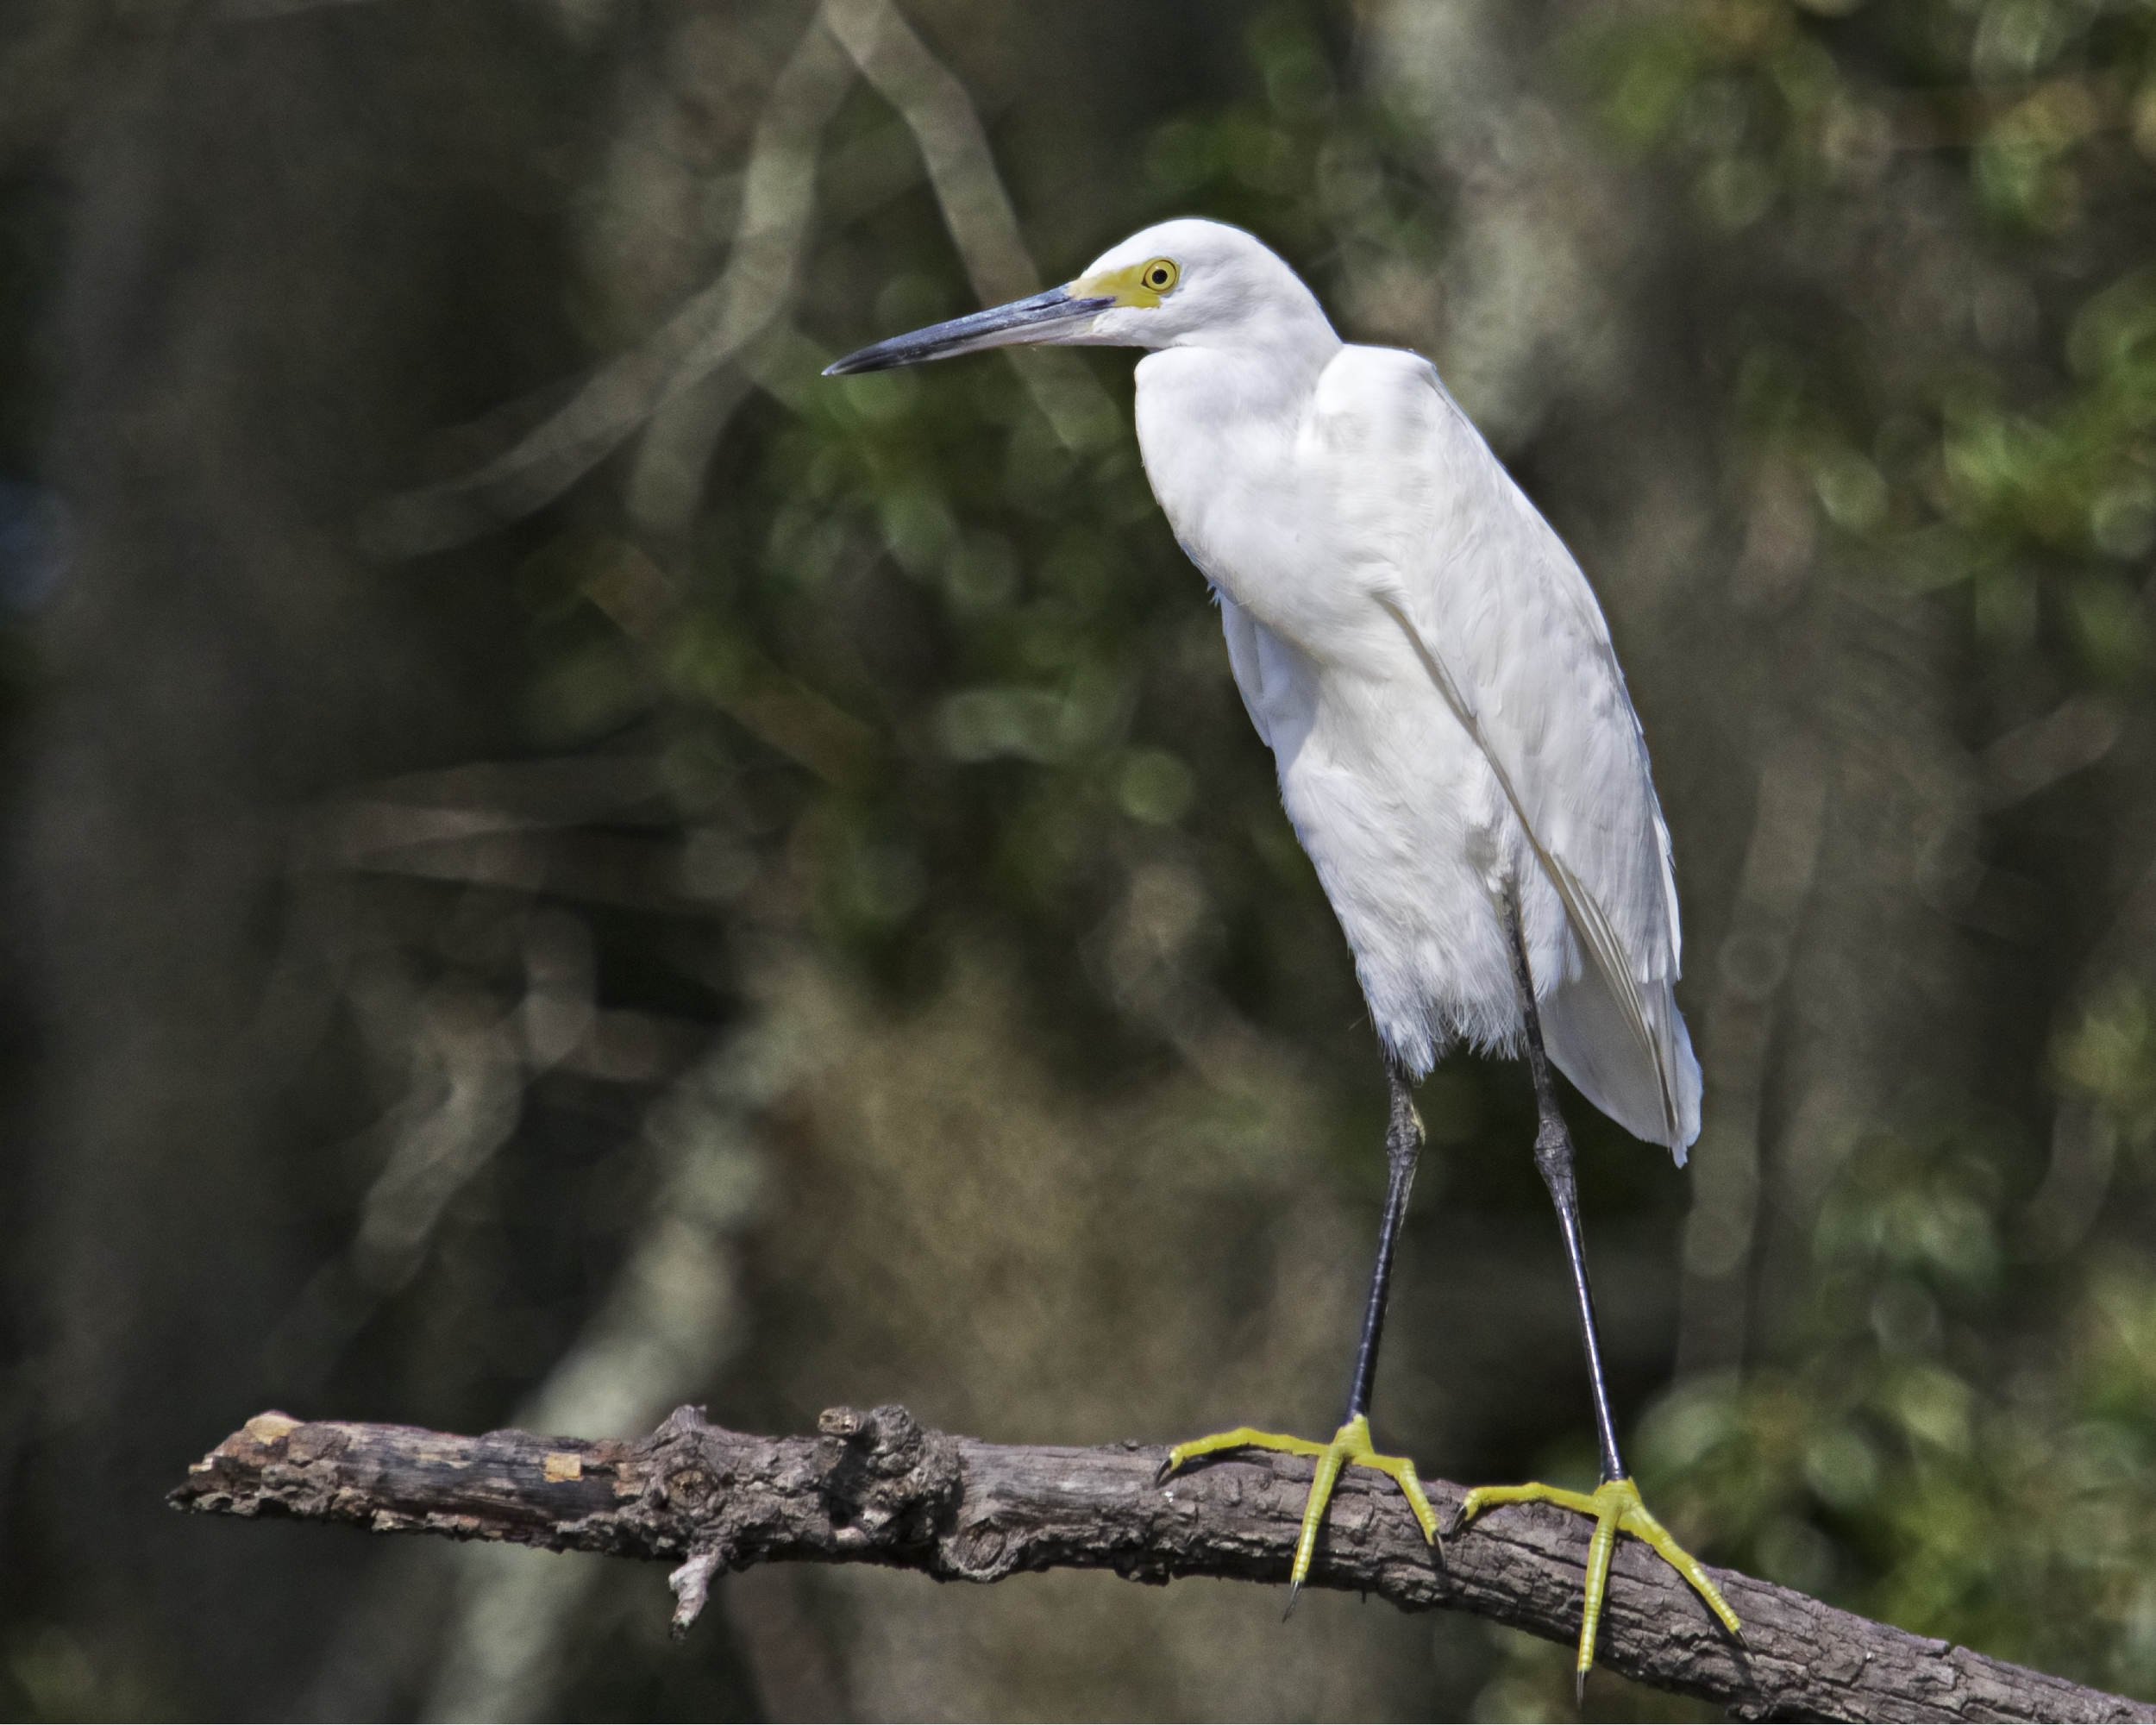 It is hard not to be happy when you have Yellow Feet! Hanging out at the Hideout with the Snowy Egret.